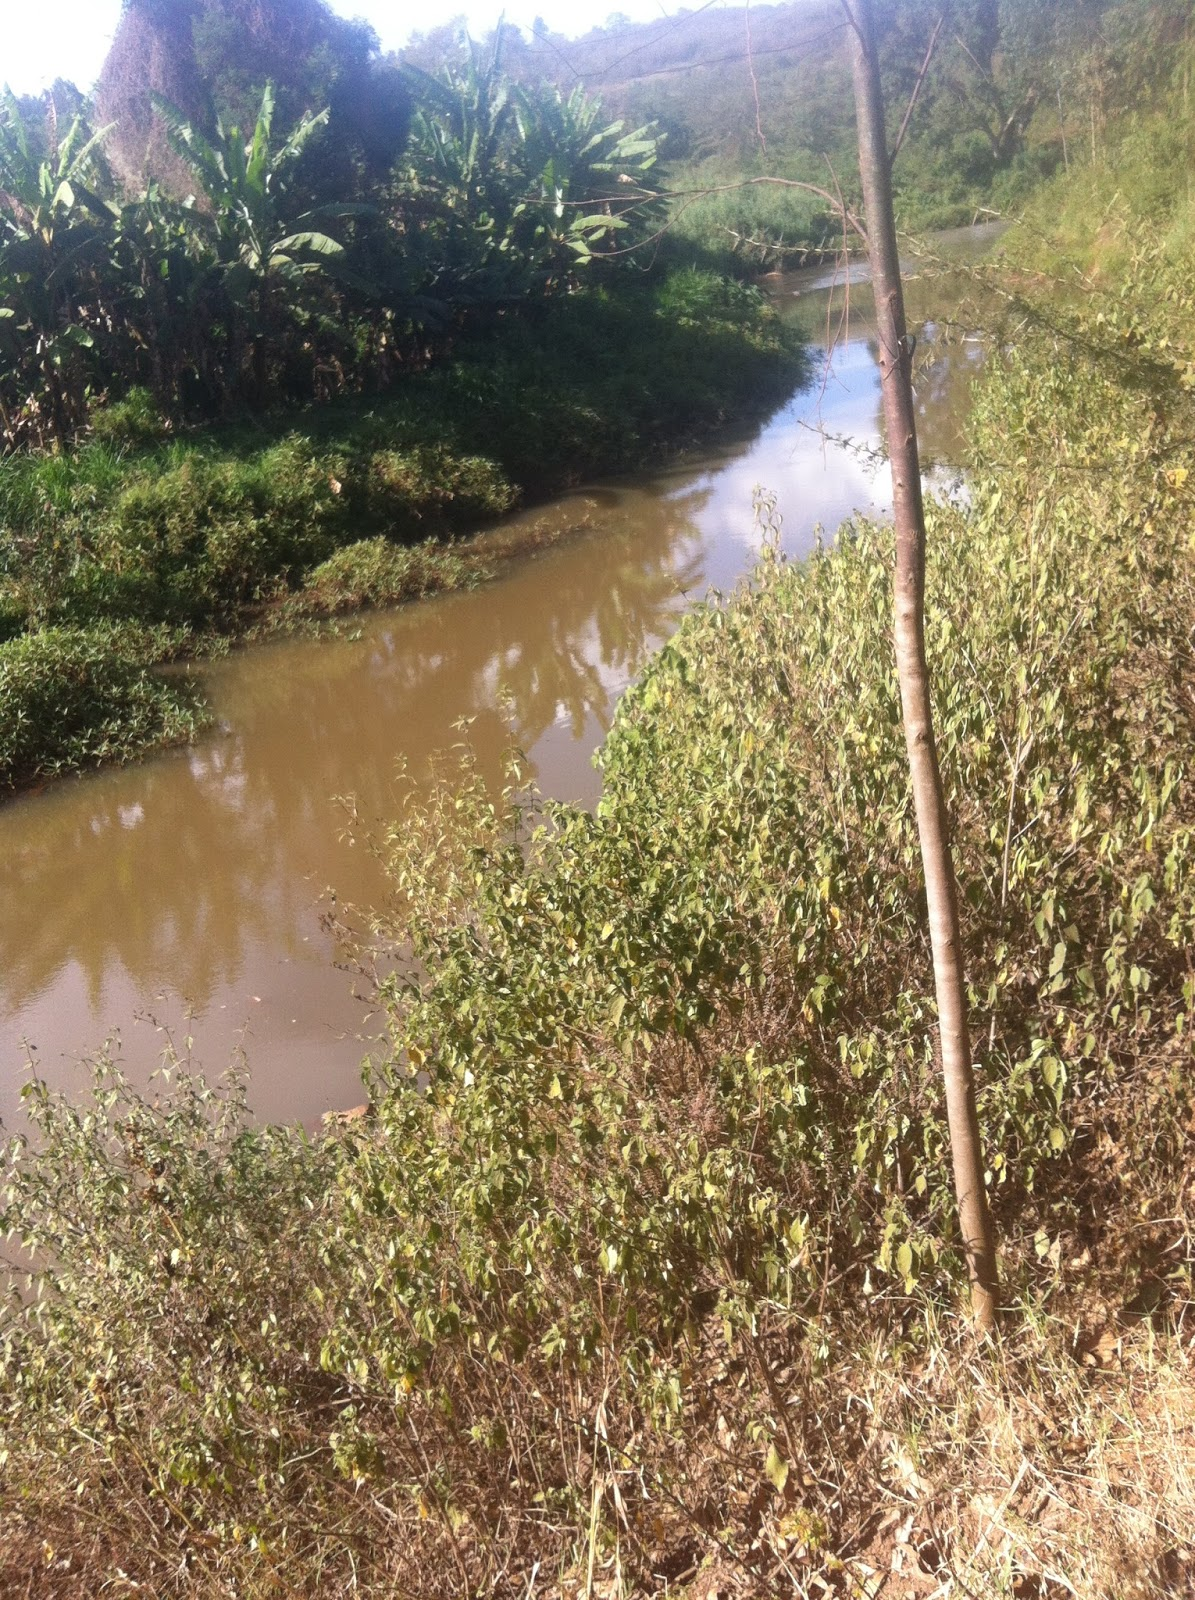 The Waters Of River Chania As Witnessed By Our Crew On Scene Oil Leak